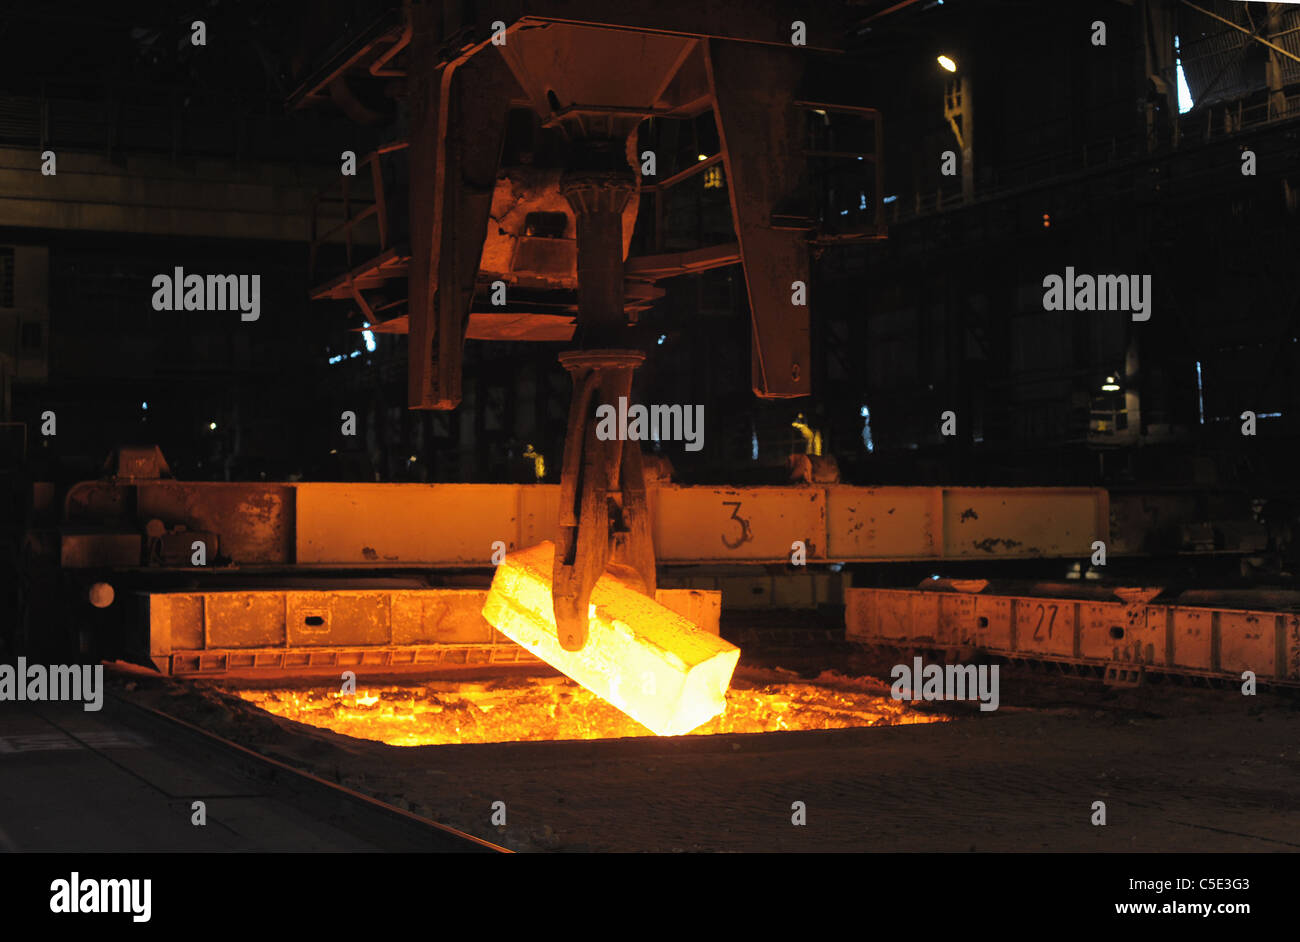 The heated steel pigs the crane from takes out furnaces - Stock Image